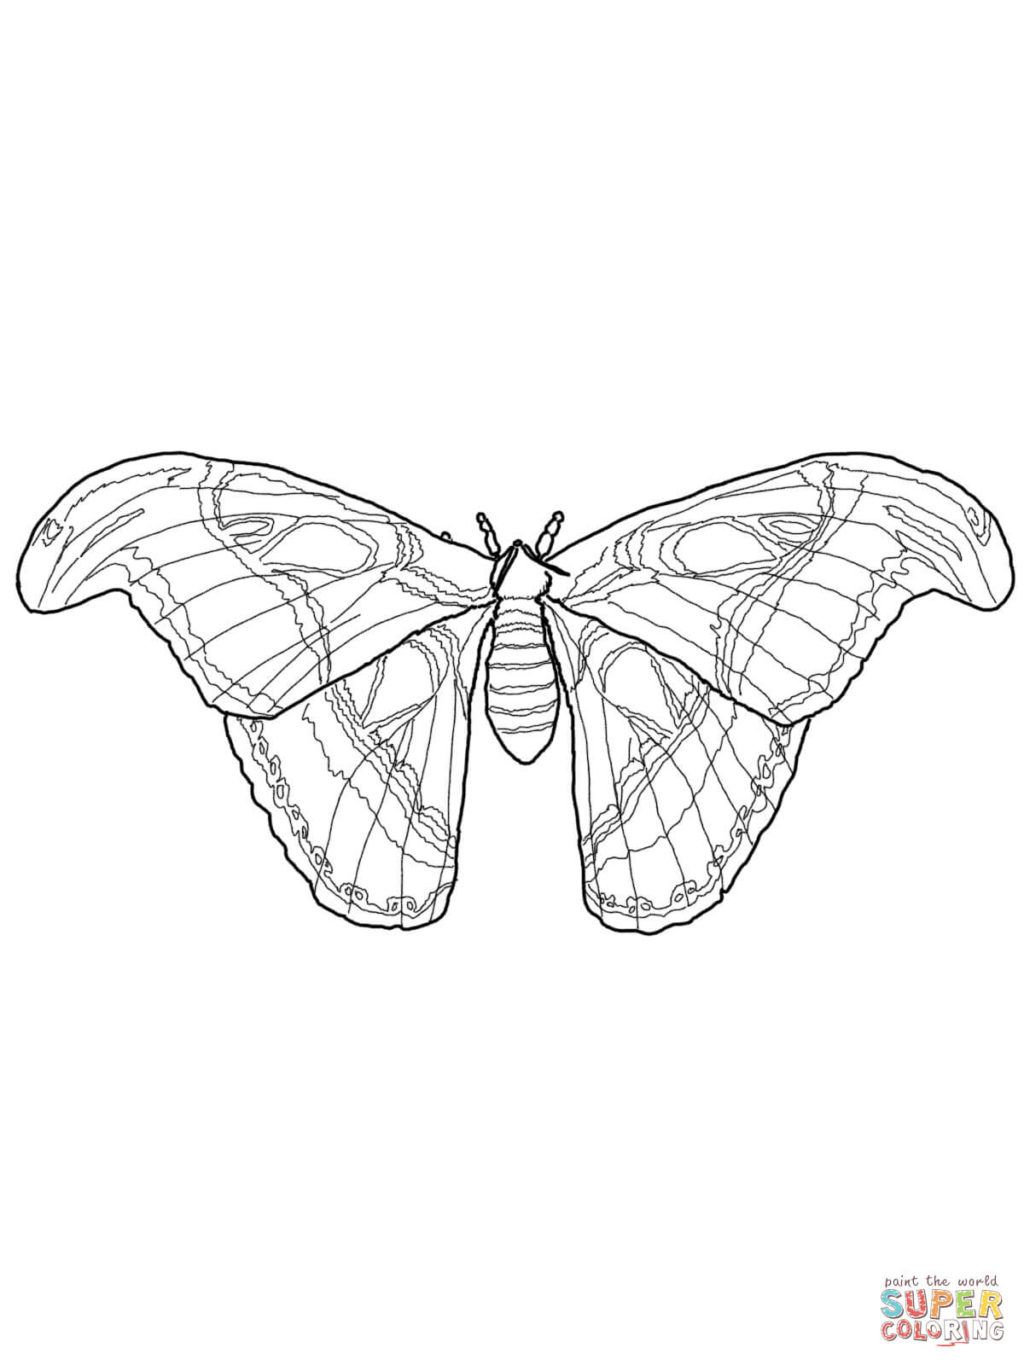 Silkworm Moth Caterpillars Coloring Page | Free Printable Coloring ...